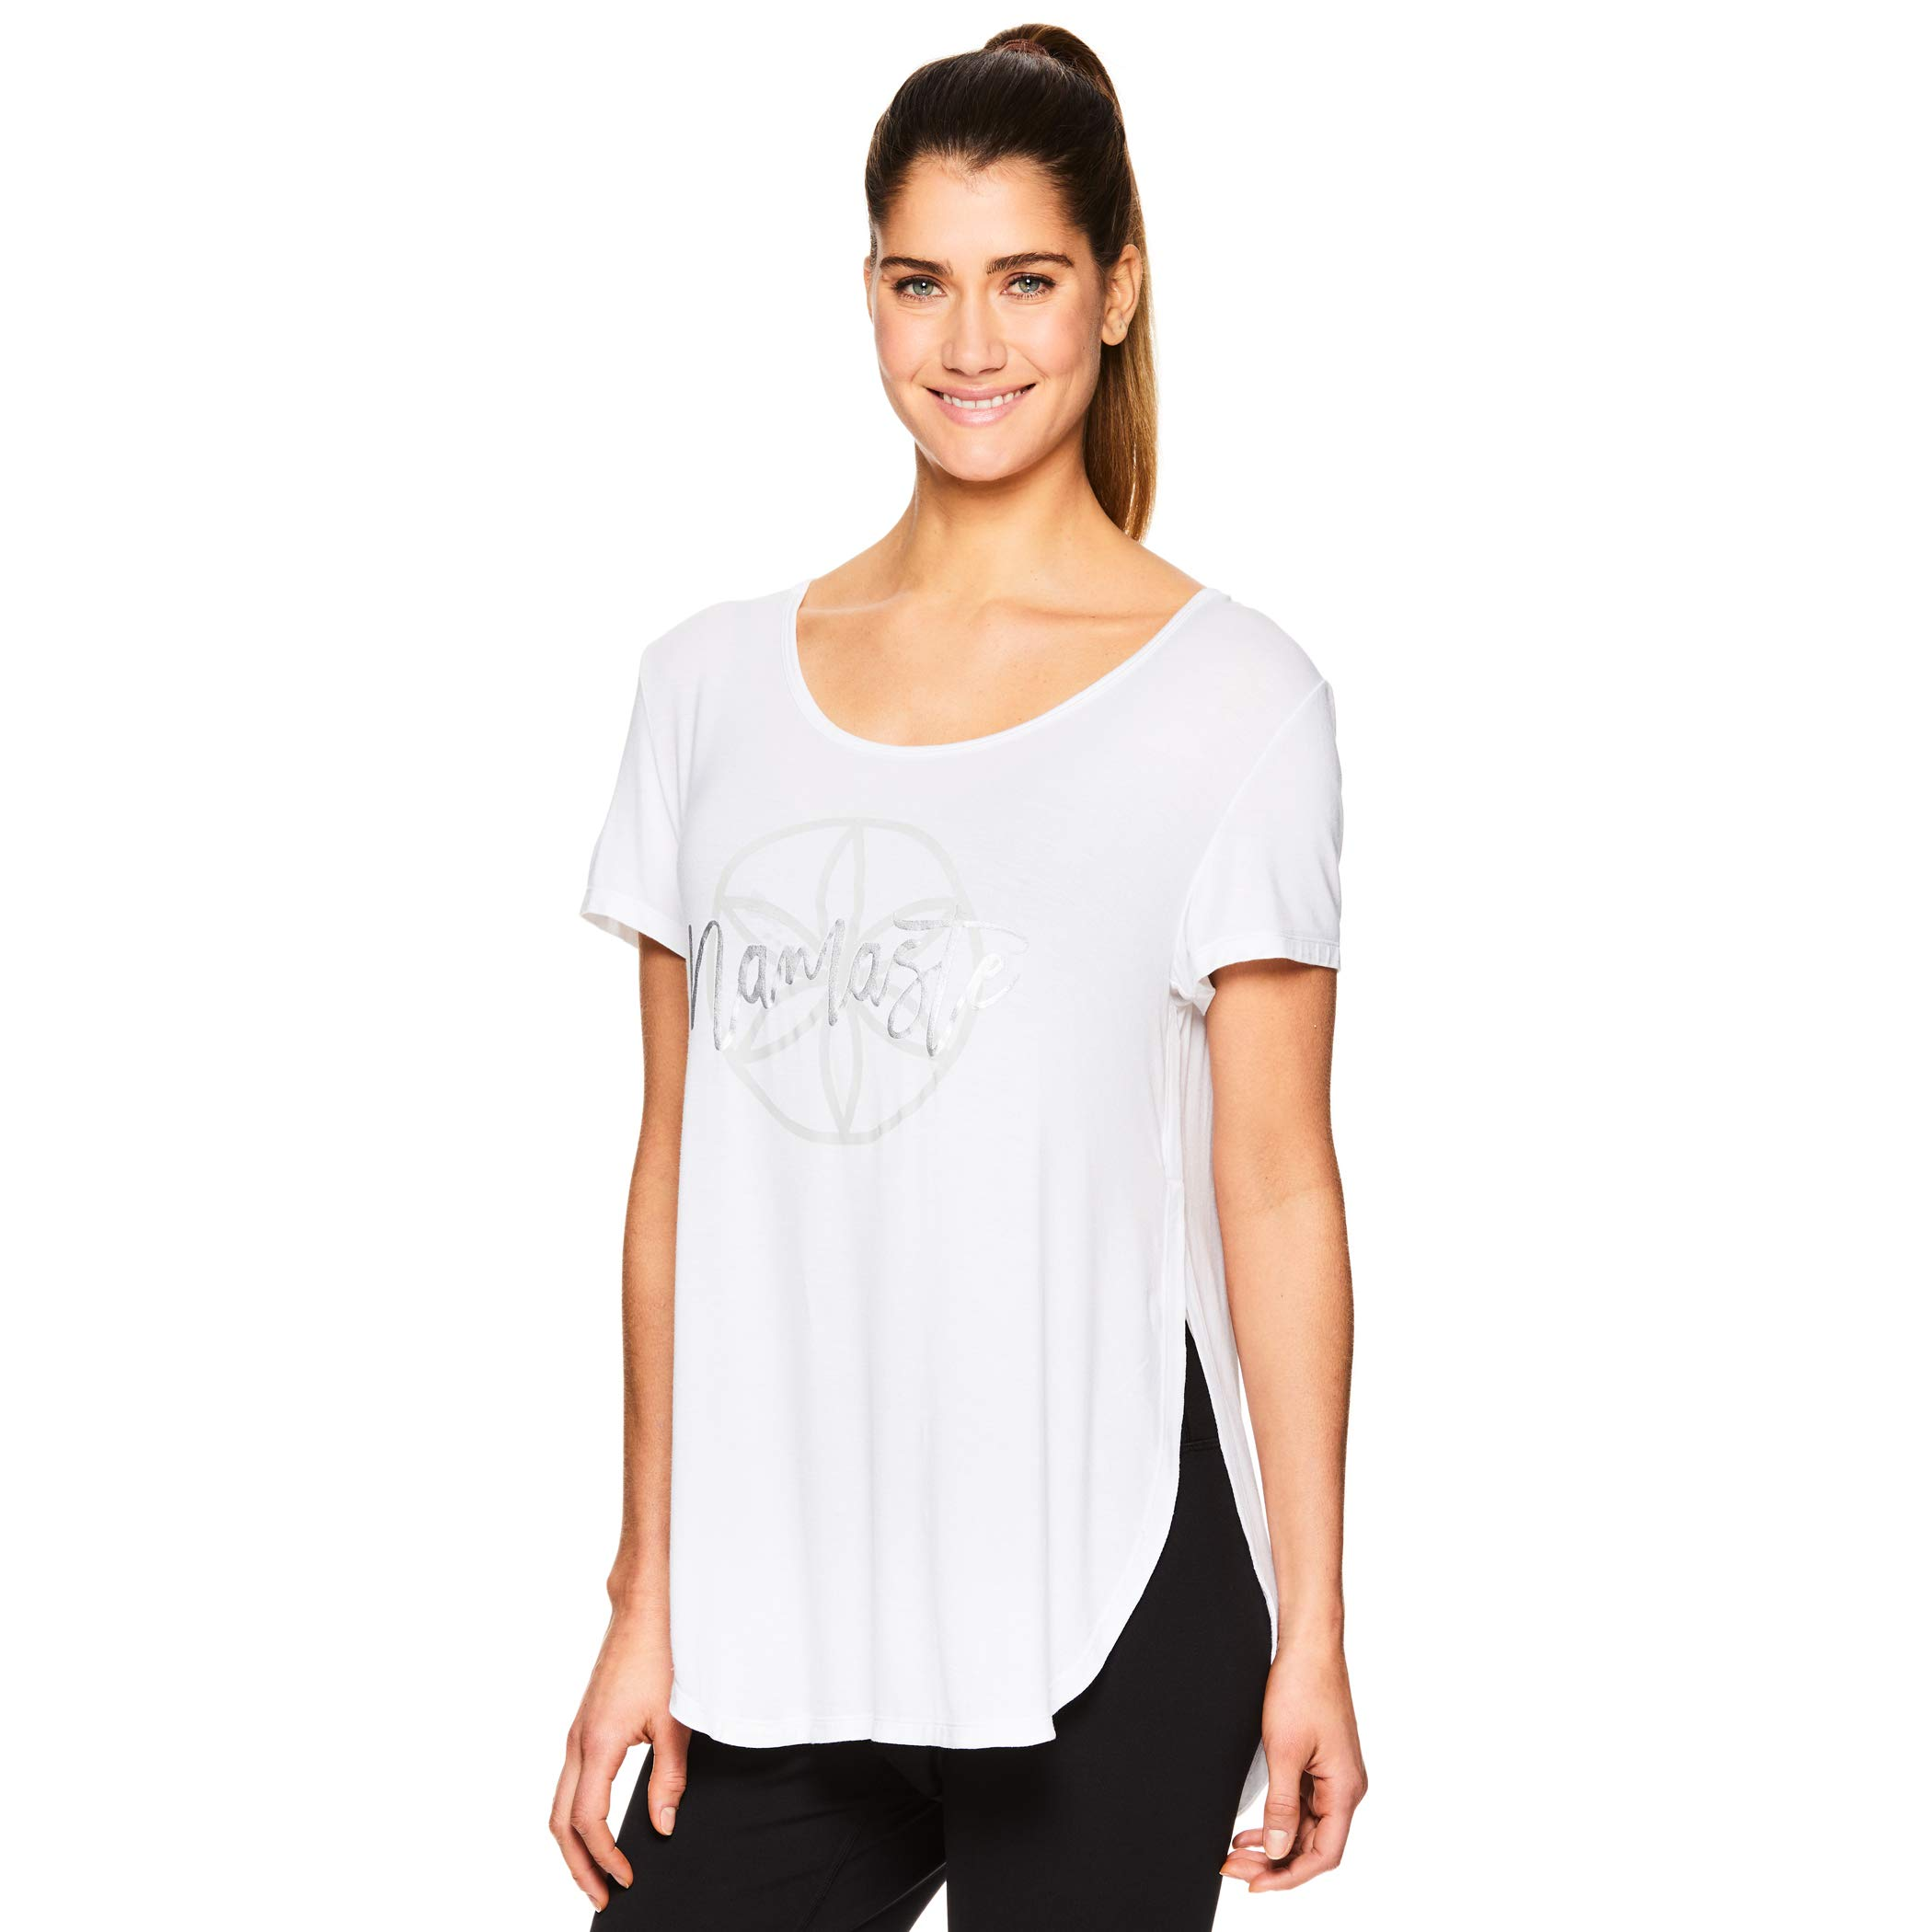 Gaiam Women's Open Back Yoga T Shirt - Relaxed Fit Short Sleeve Workout & Training Top